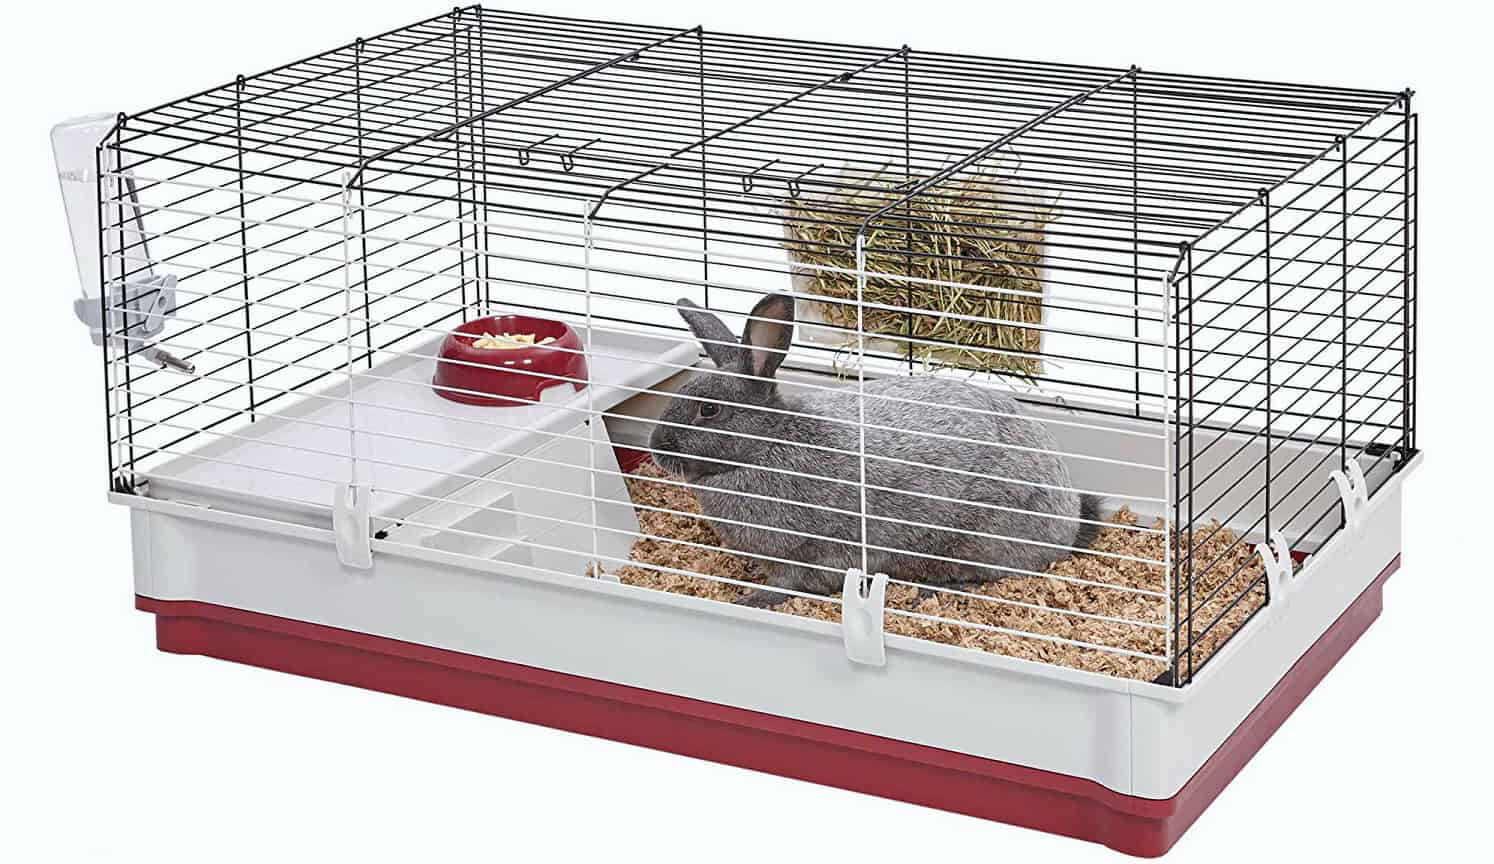 Large Rabbit Cage as the second related product of the Best Rabbit Cage